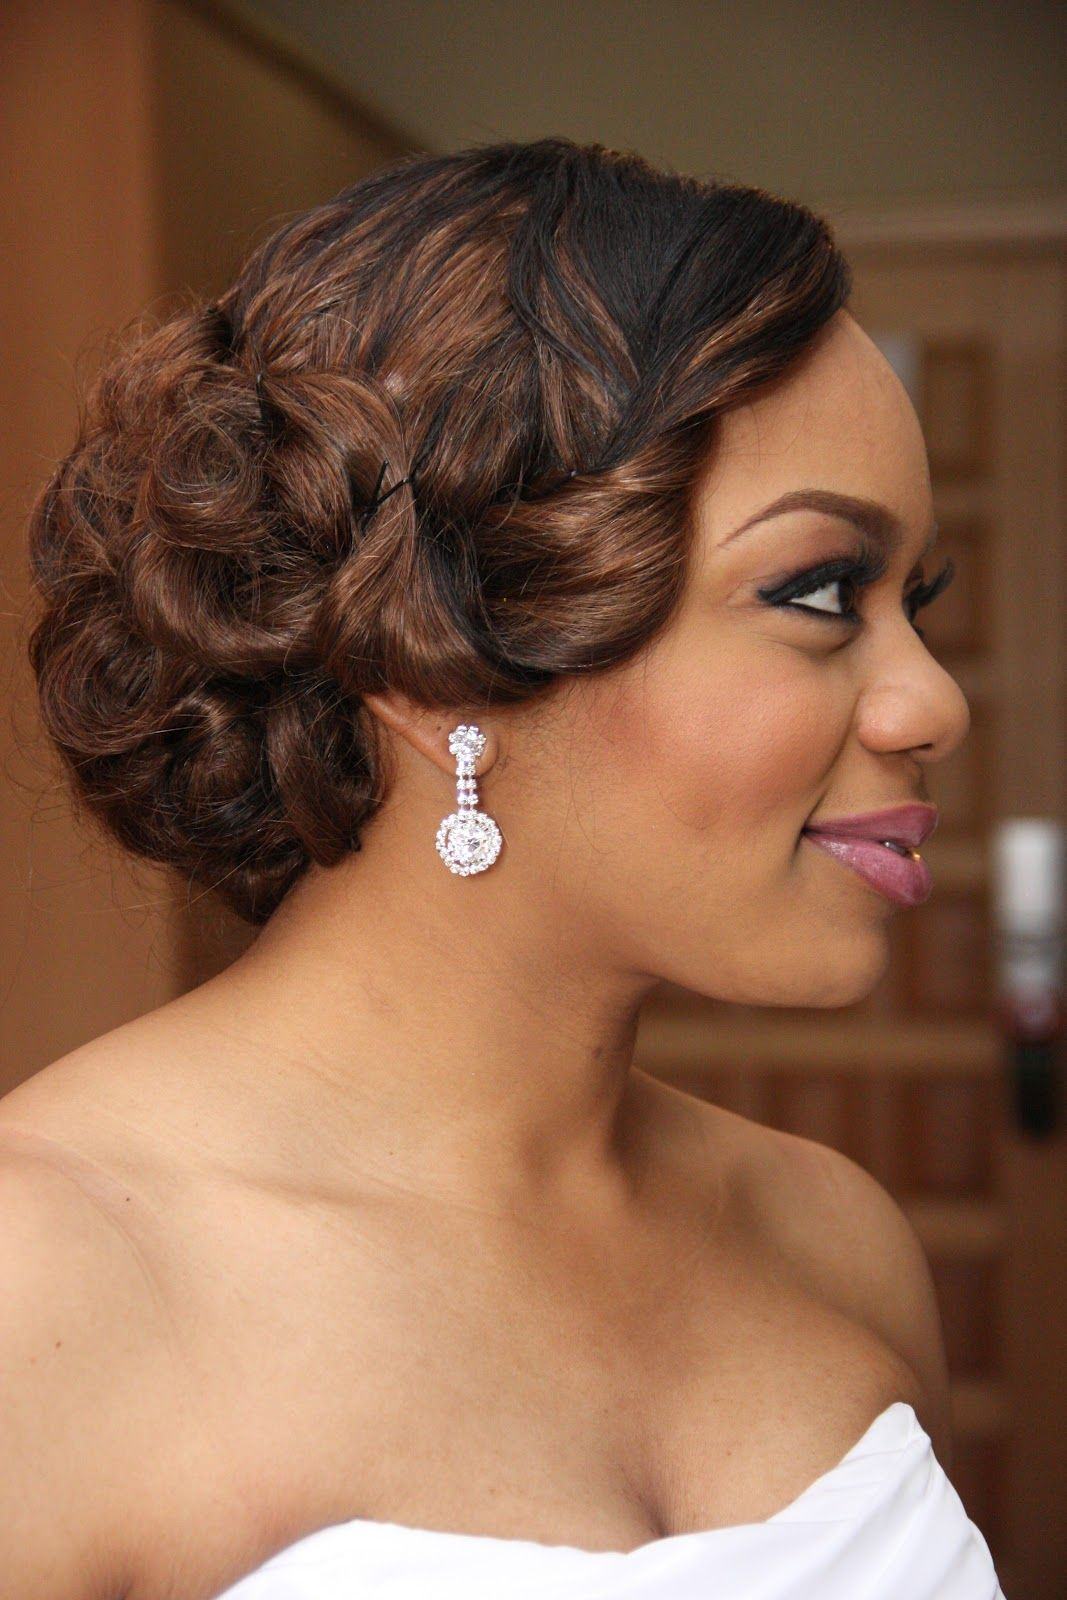 Hairstyles For Weddings 2015 Wedding Digest Love The Hair Do On This One Too Weddings